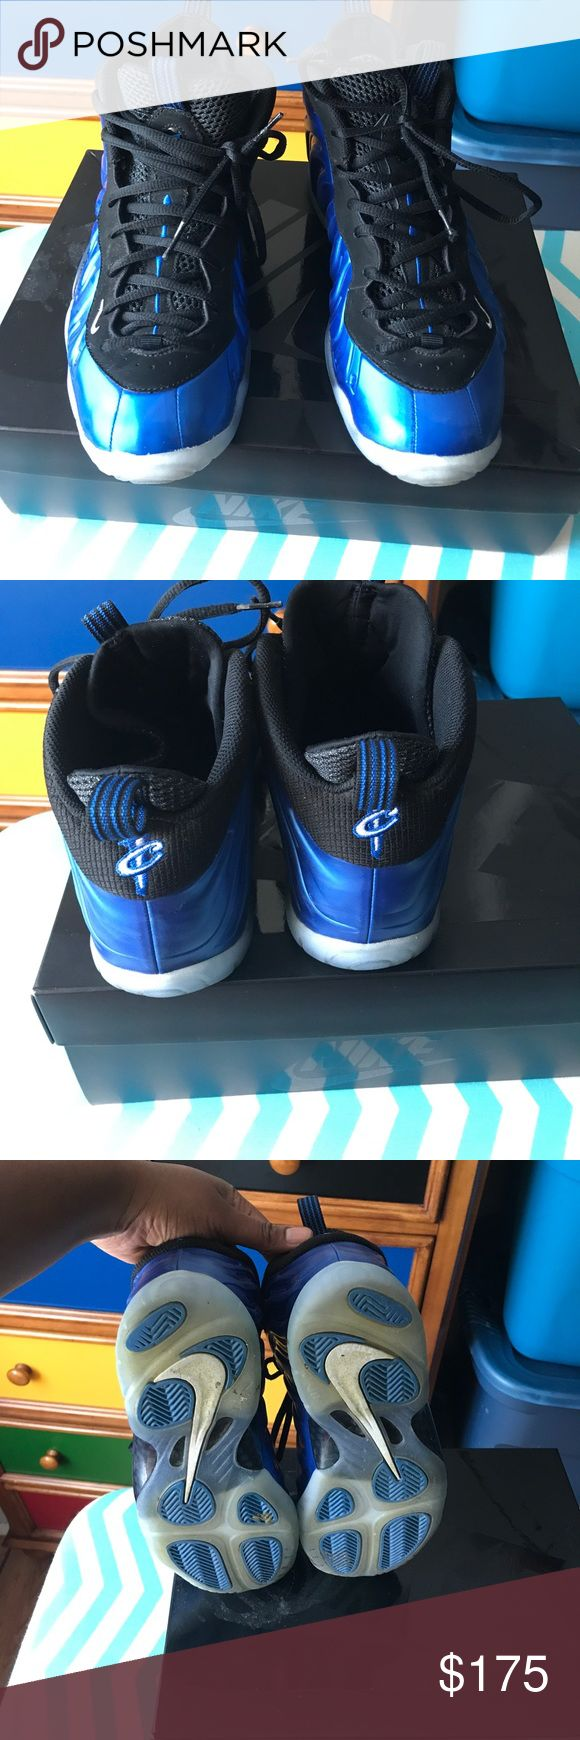 Big Kid foamposite Barely worn big kid foamposites; Royal and Black! Still in great condition looks new! Only worn for one month. Price is firm Nike Shoes Sneakers